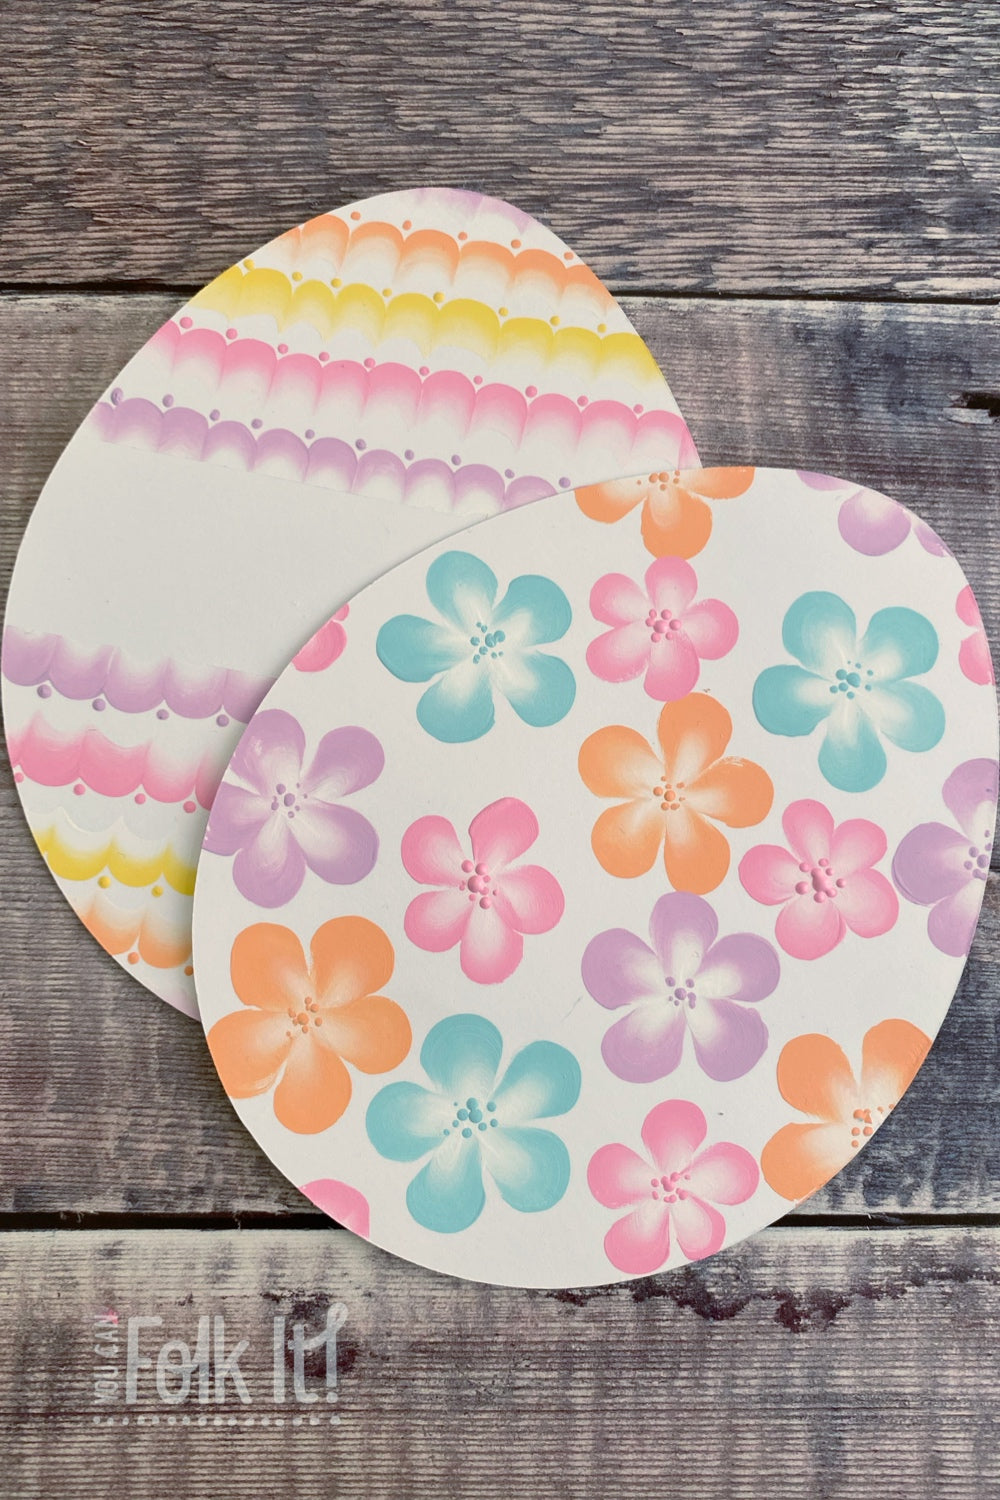 Easter egg card shapes hand painted using flowers and patterns by You Can Folk It